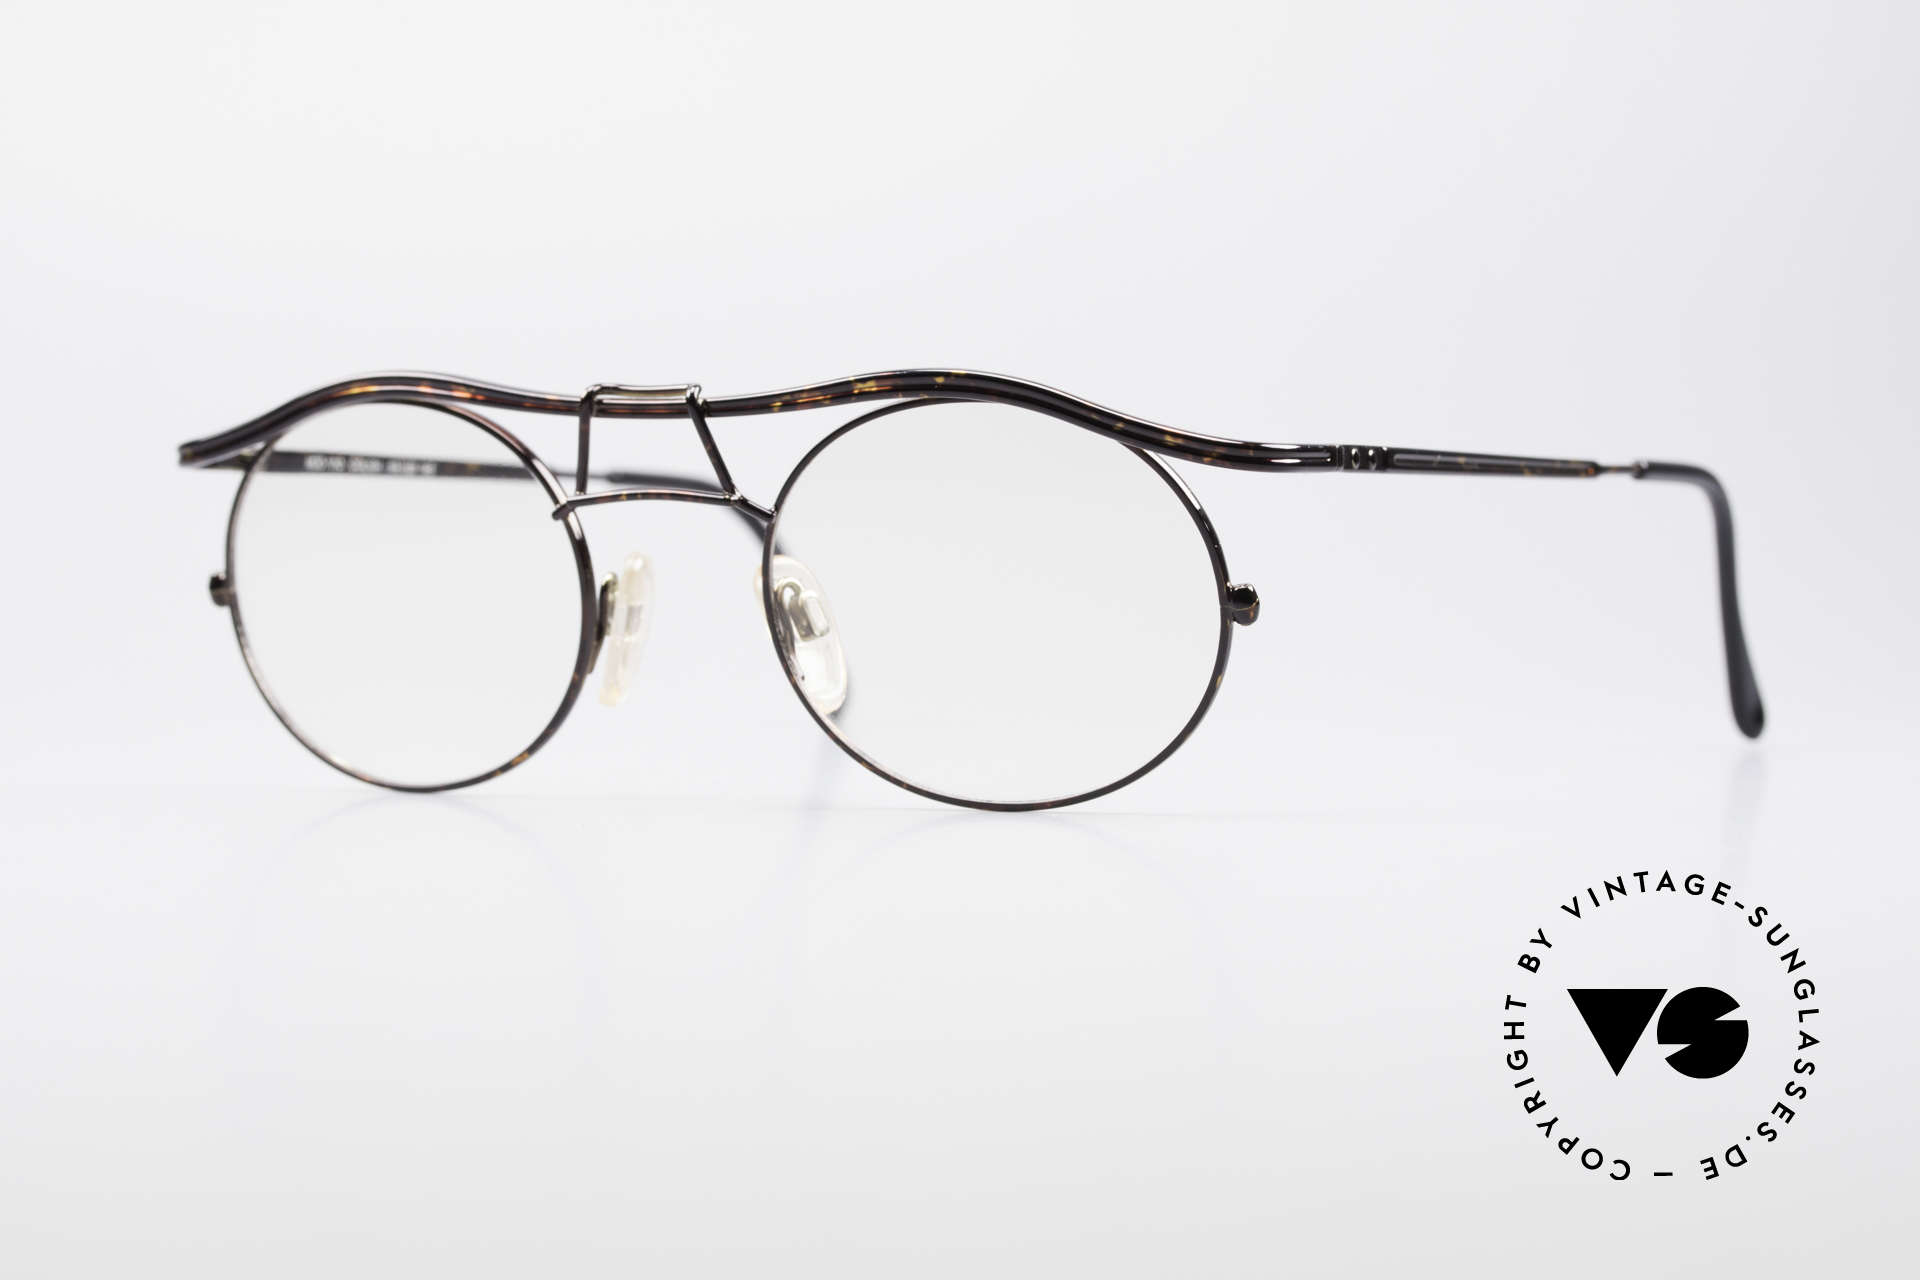 Cazal 1110 - Point 2 90's Industrial Eyeglasses, 1110: one of the top-models of the Cazal 'Point 2' series, Made for Men